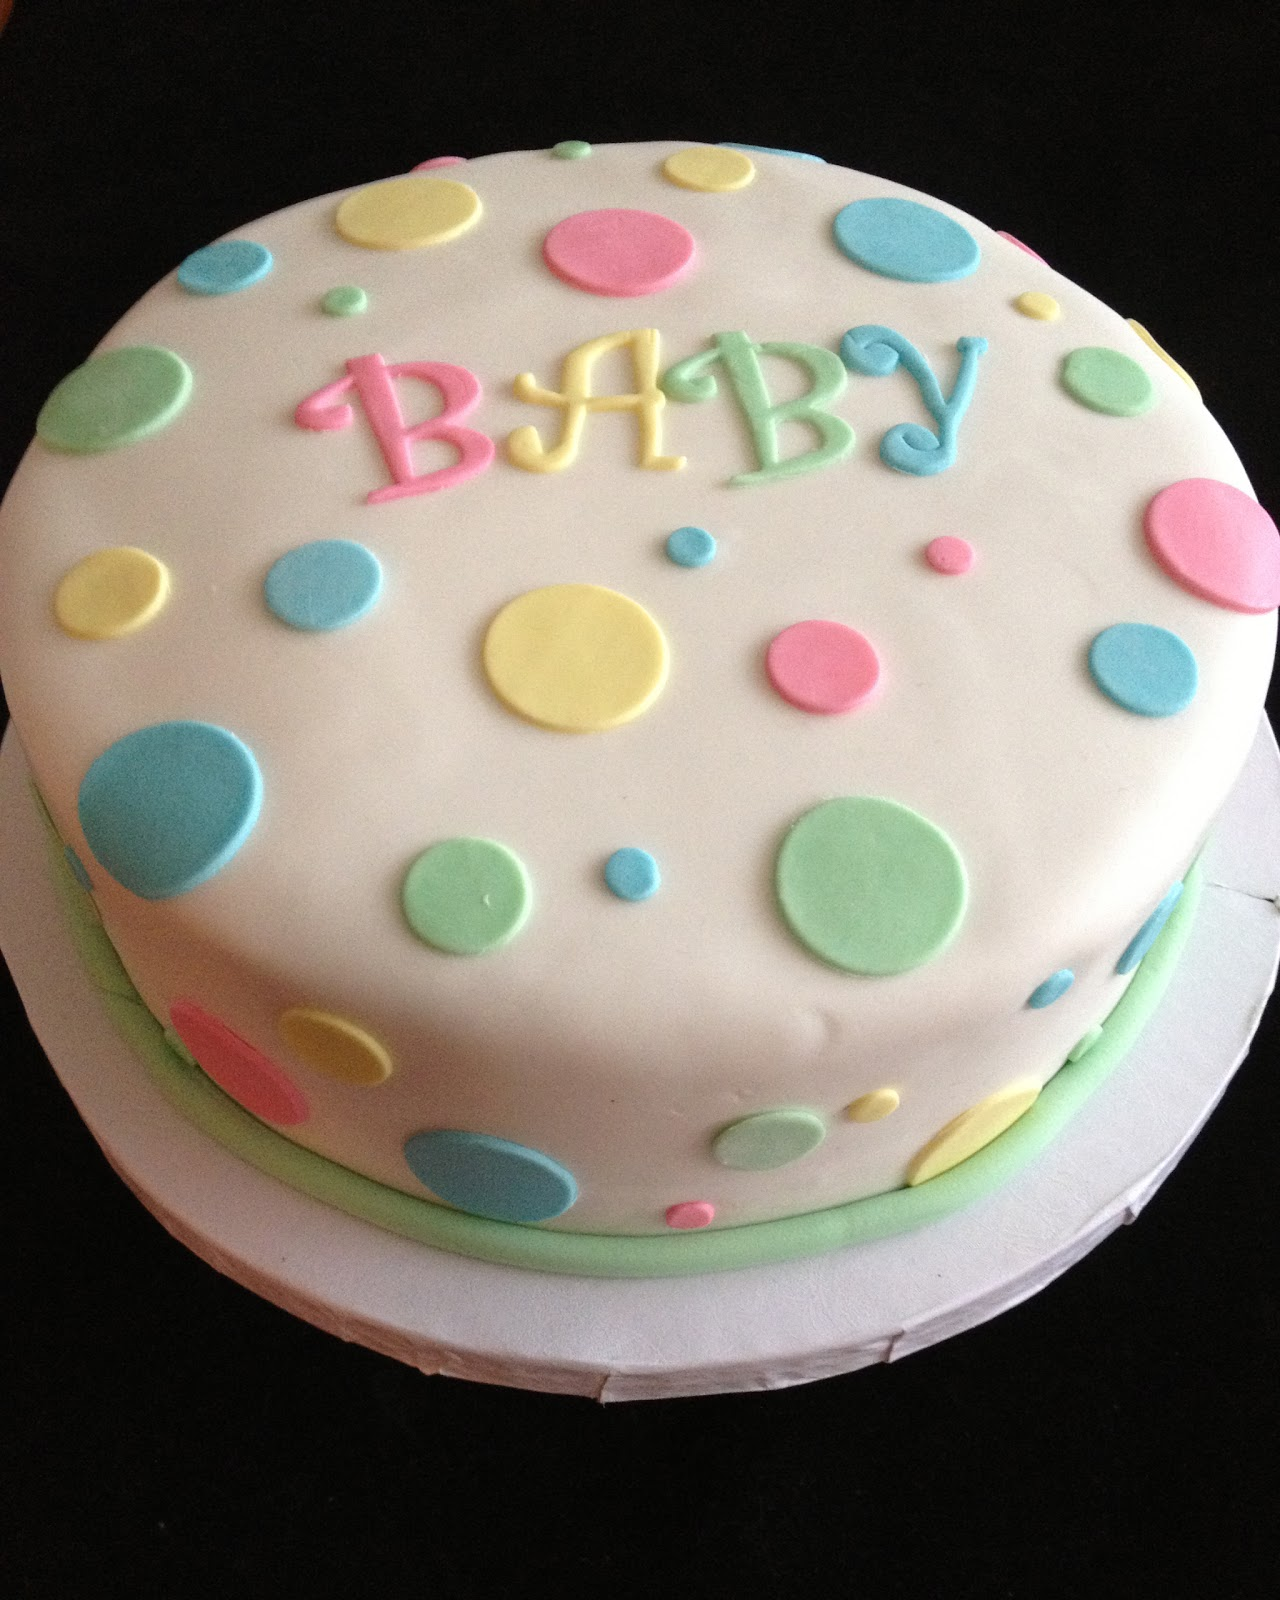 Cake Designs For Baby : Baby Shower Cakes: Baby Shower Cake Ideas To Make At Home